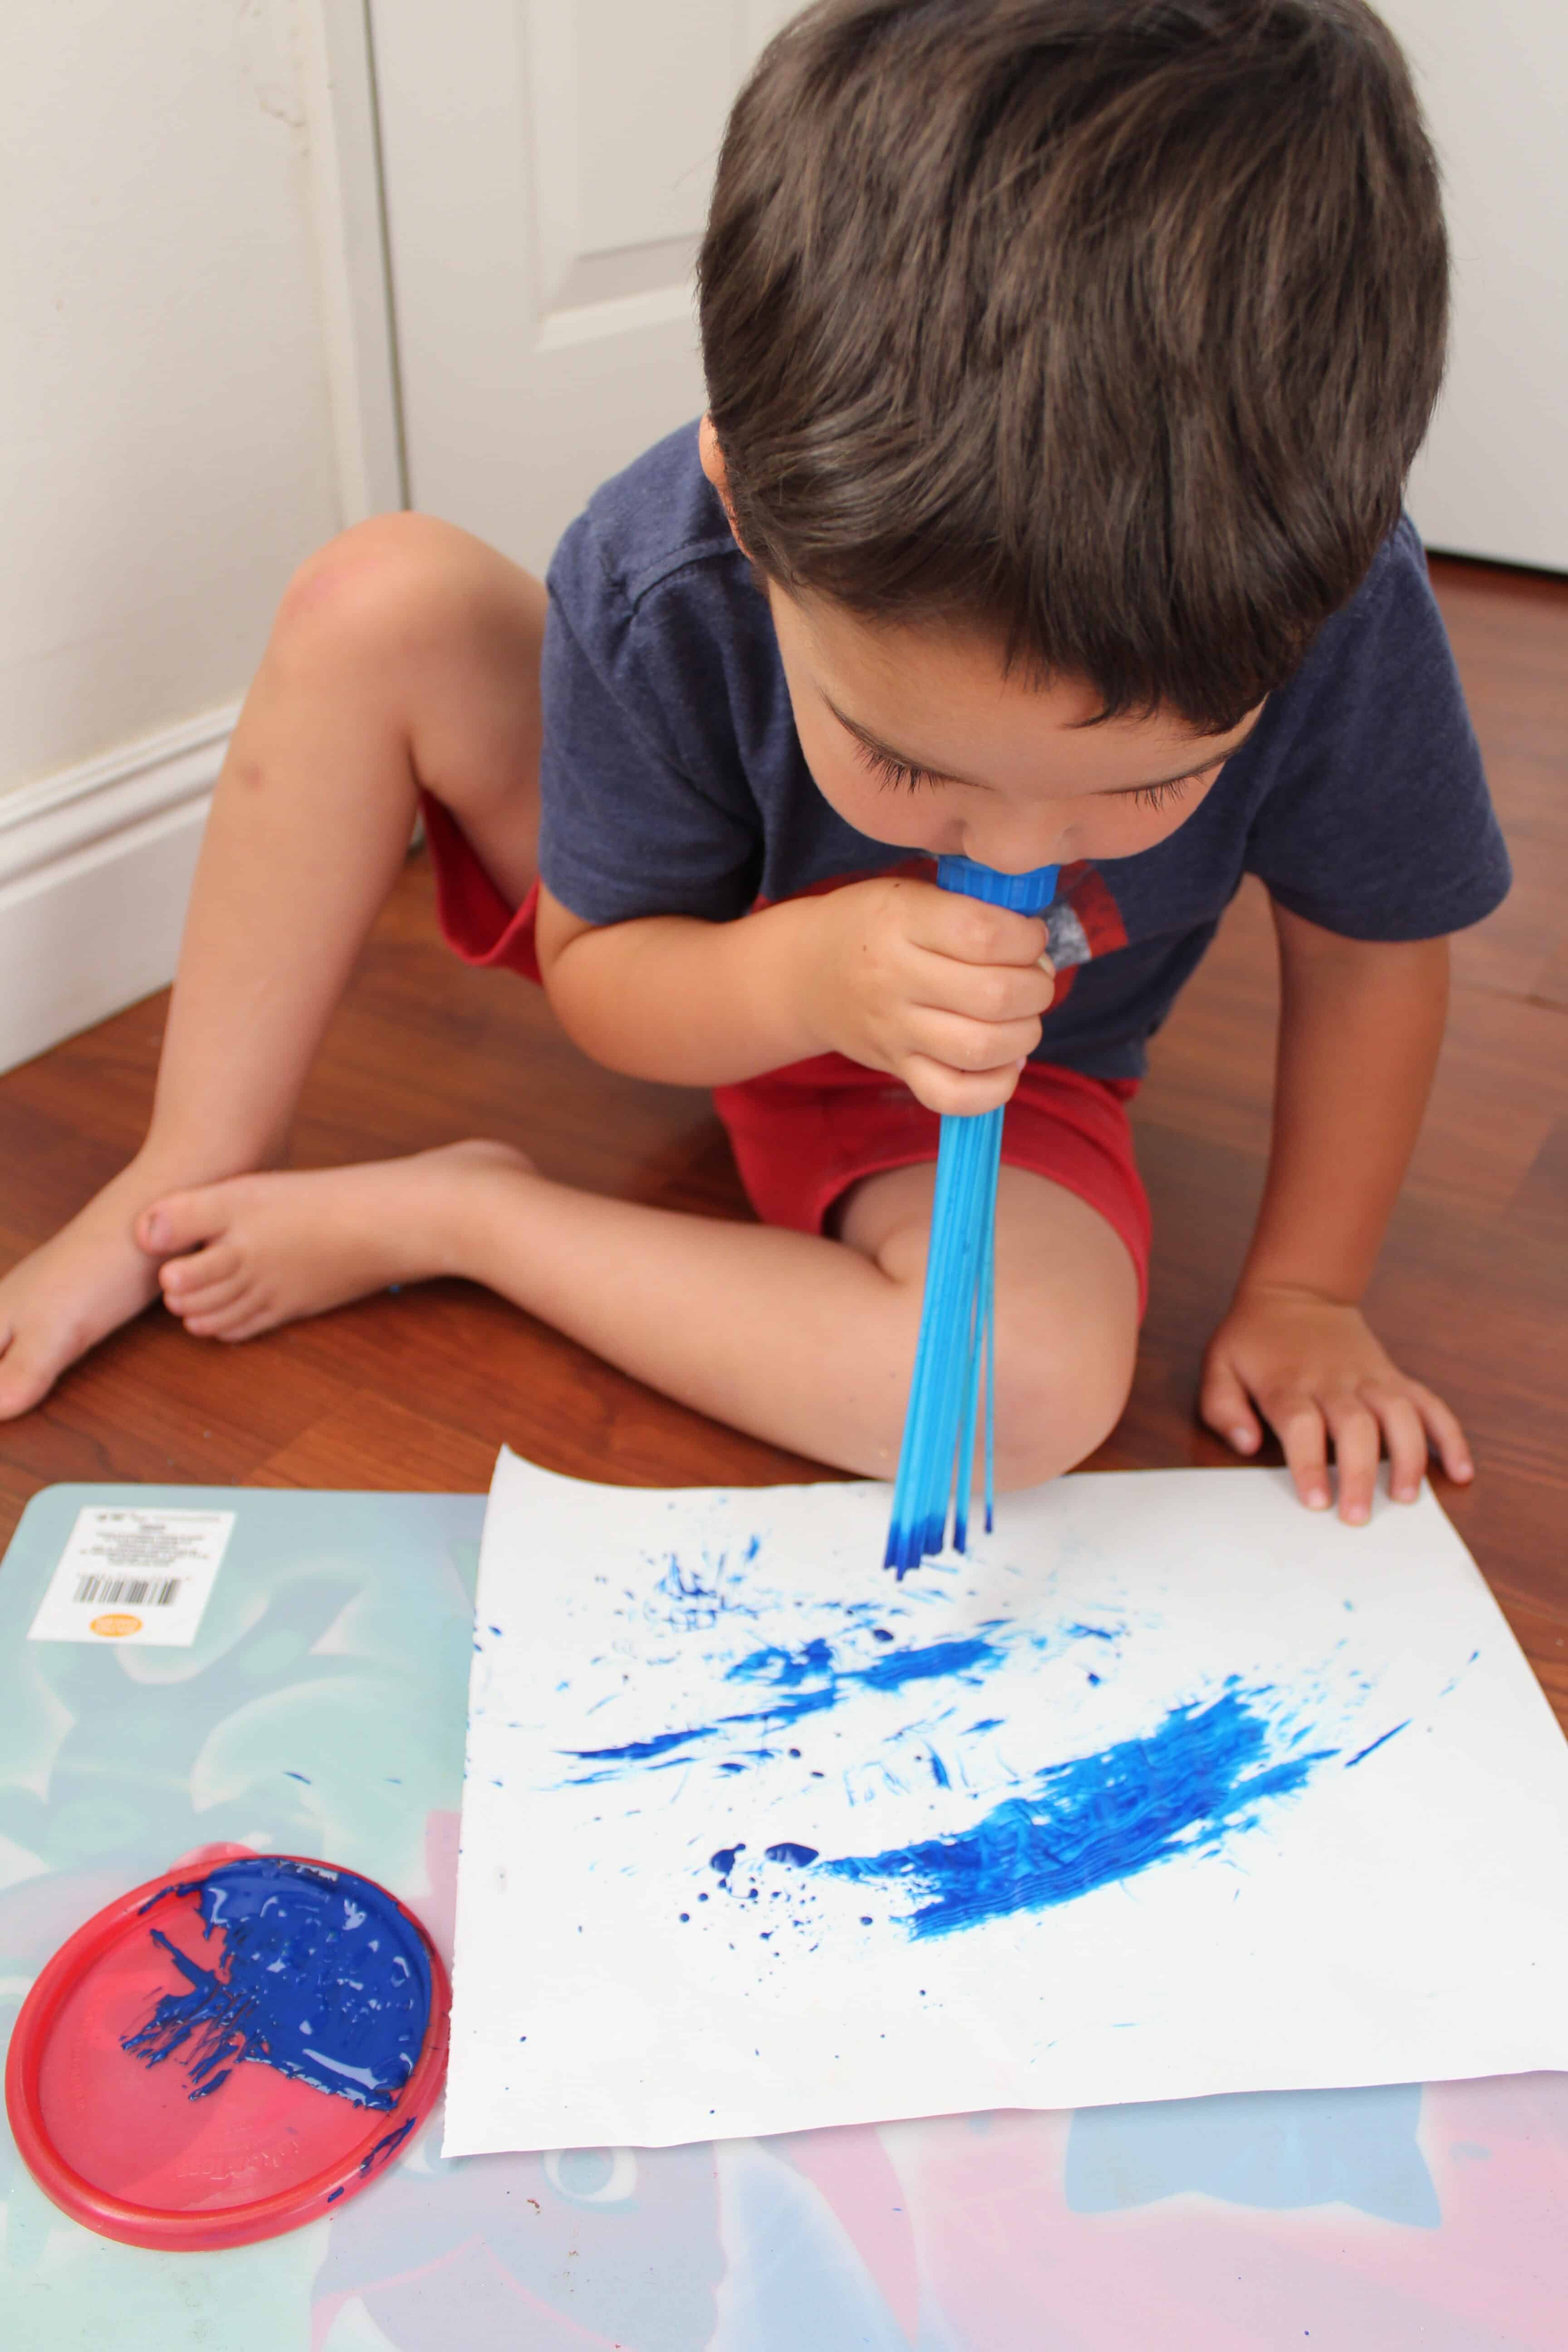 Toddler blowing on the bunch a balloons maker end cap to push pain onto the paper.